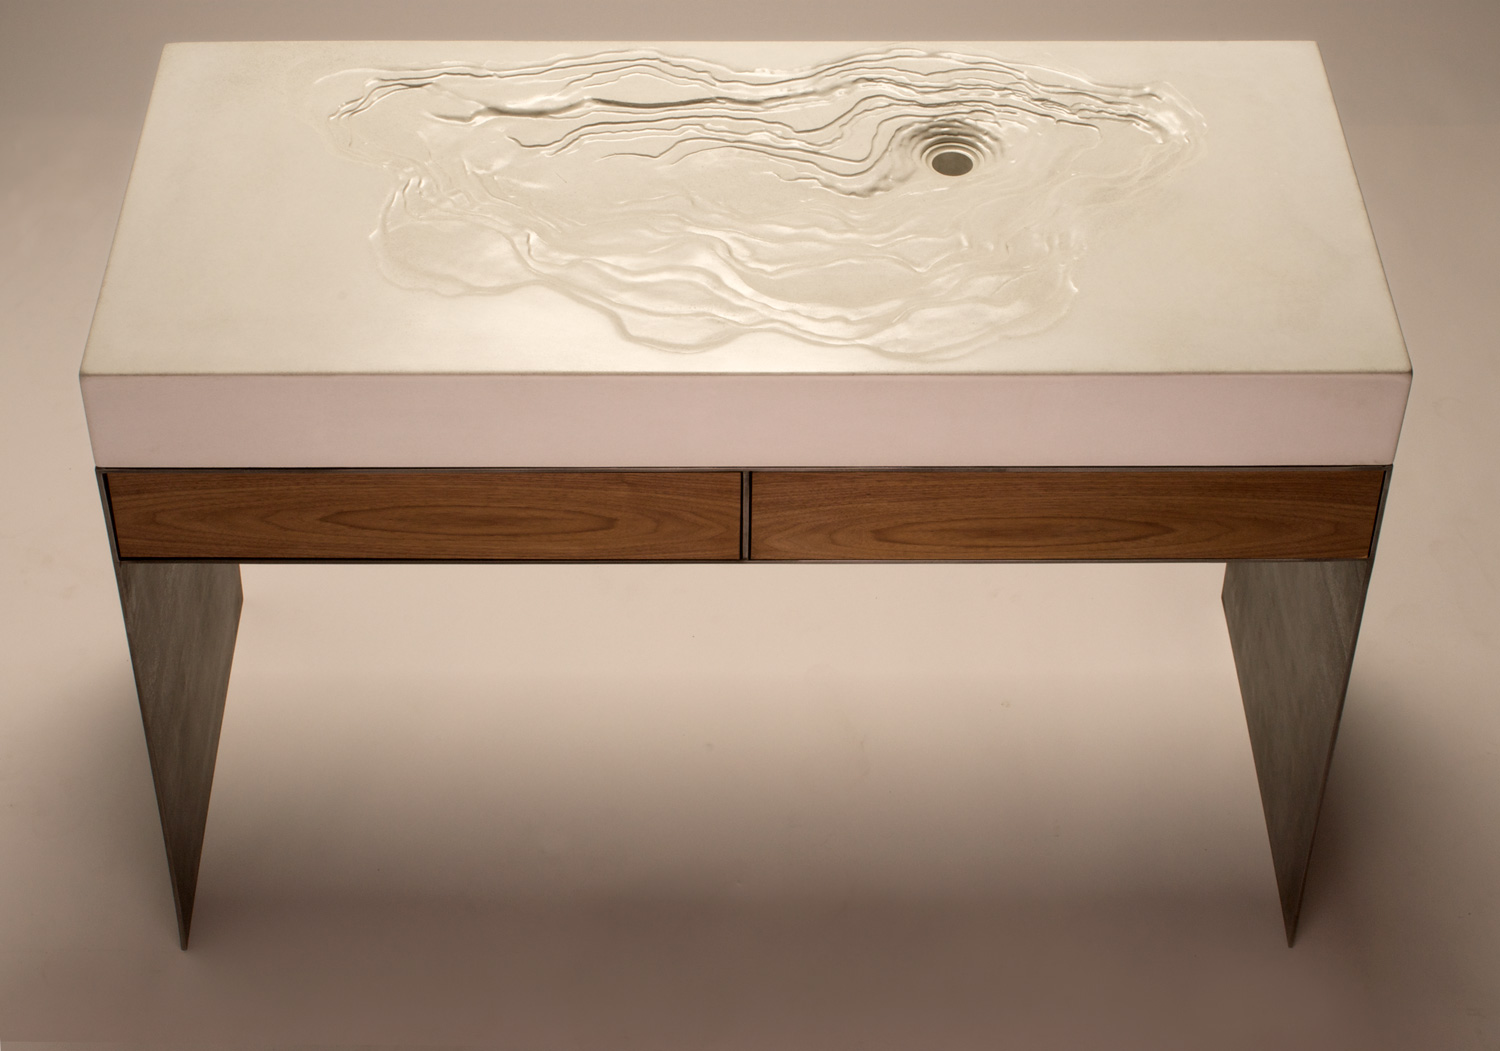 A white concrete ADA compliant Erosion Sink on a custom steel sink base with walnut drawers.